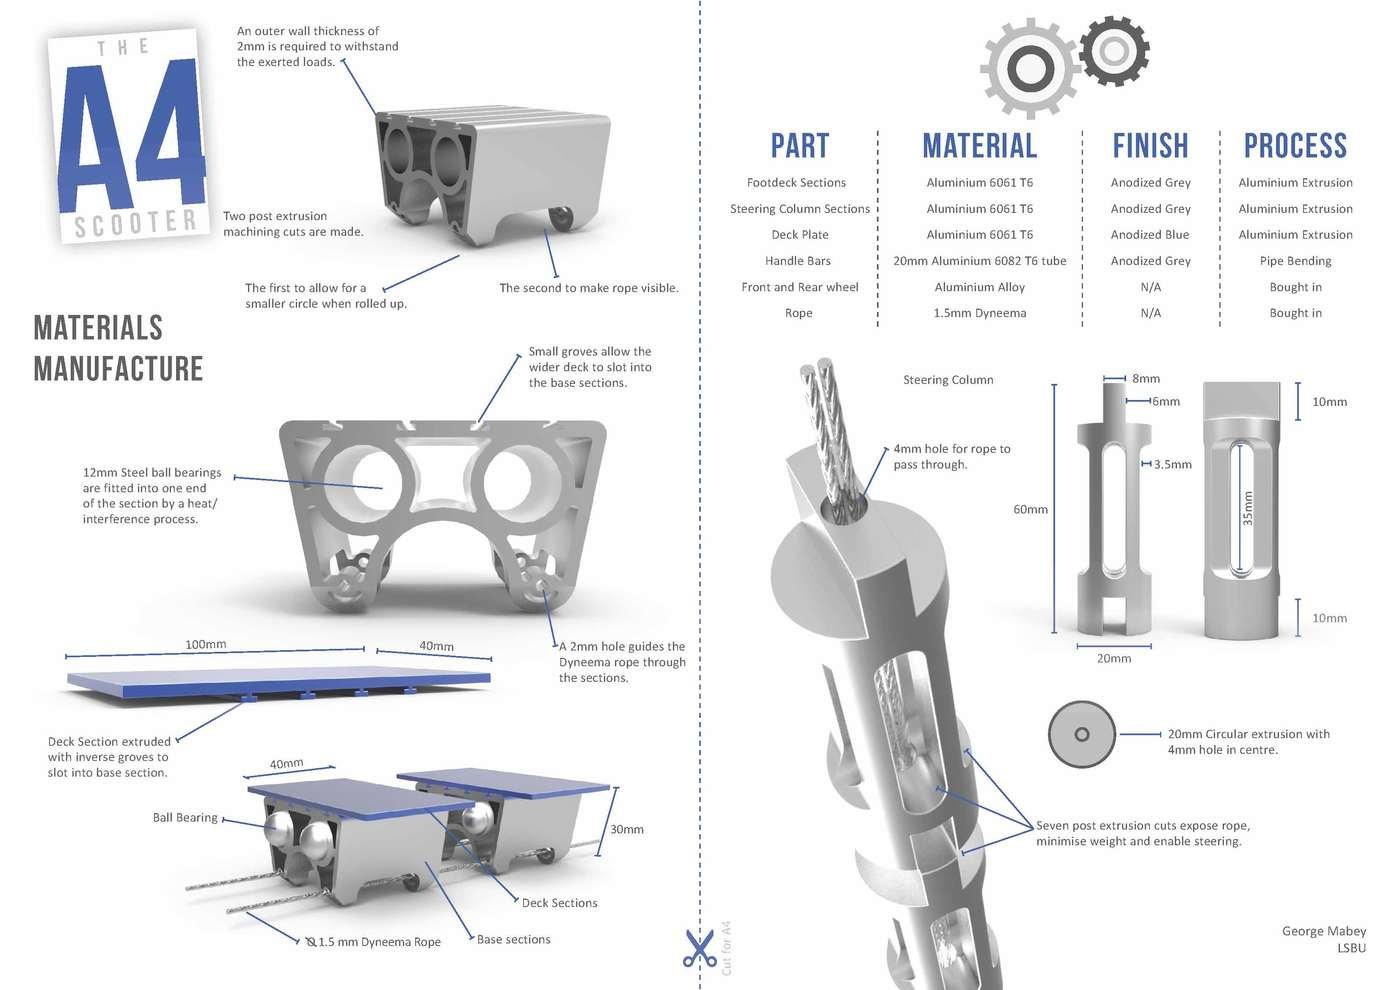 WINNER Power of Aluminium Extrusion Competition 2014 by